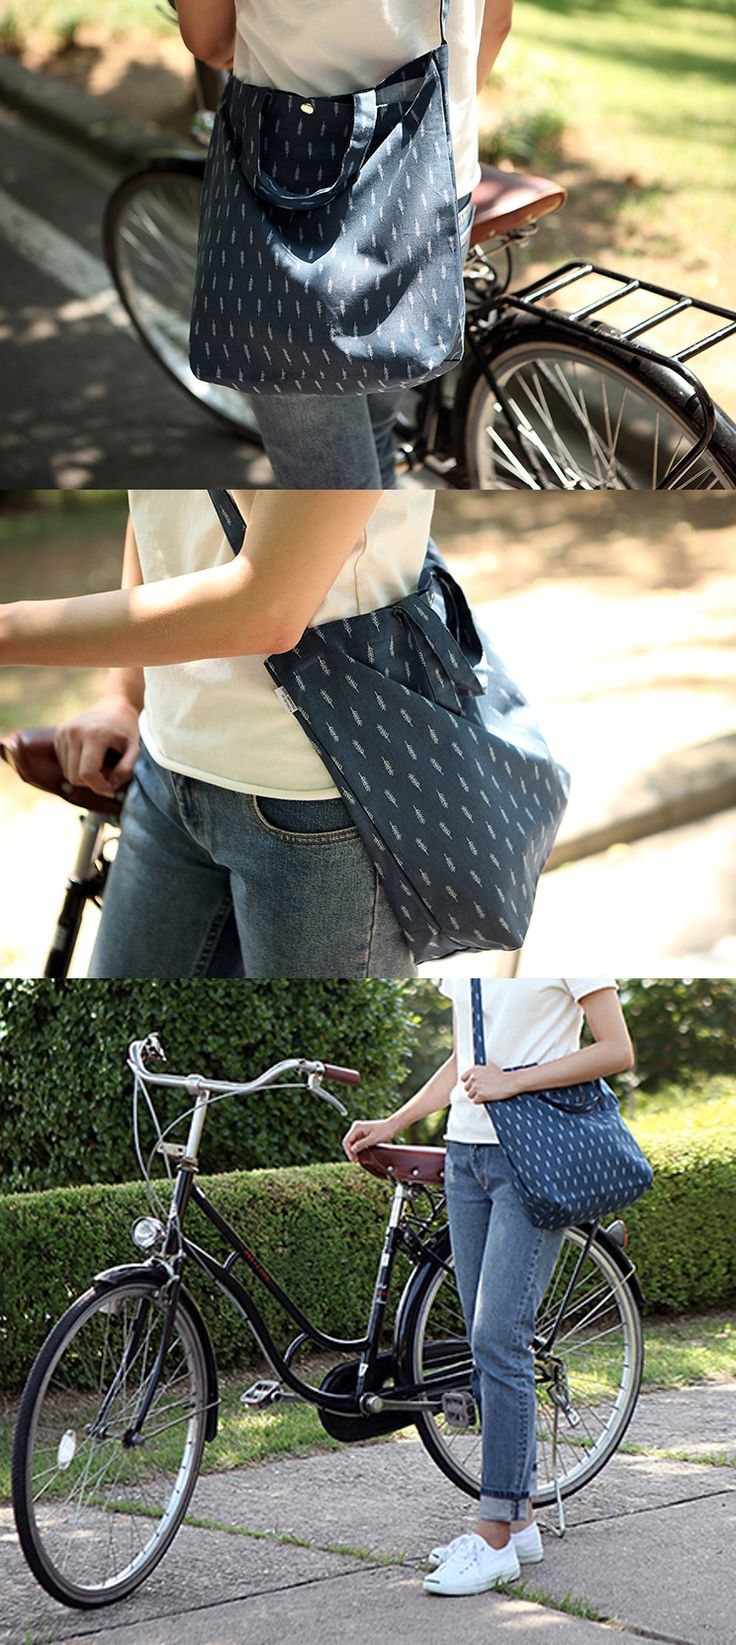 Grocery shopping? Going on a walk? On your way to school? Heading out for a short trip? Take the Dailylike Pattern Messenger Bag with you for the journey ahead!